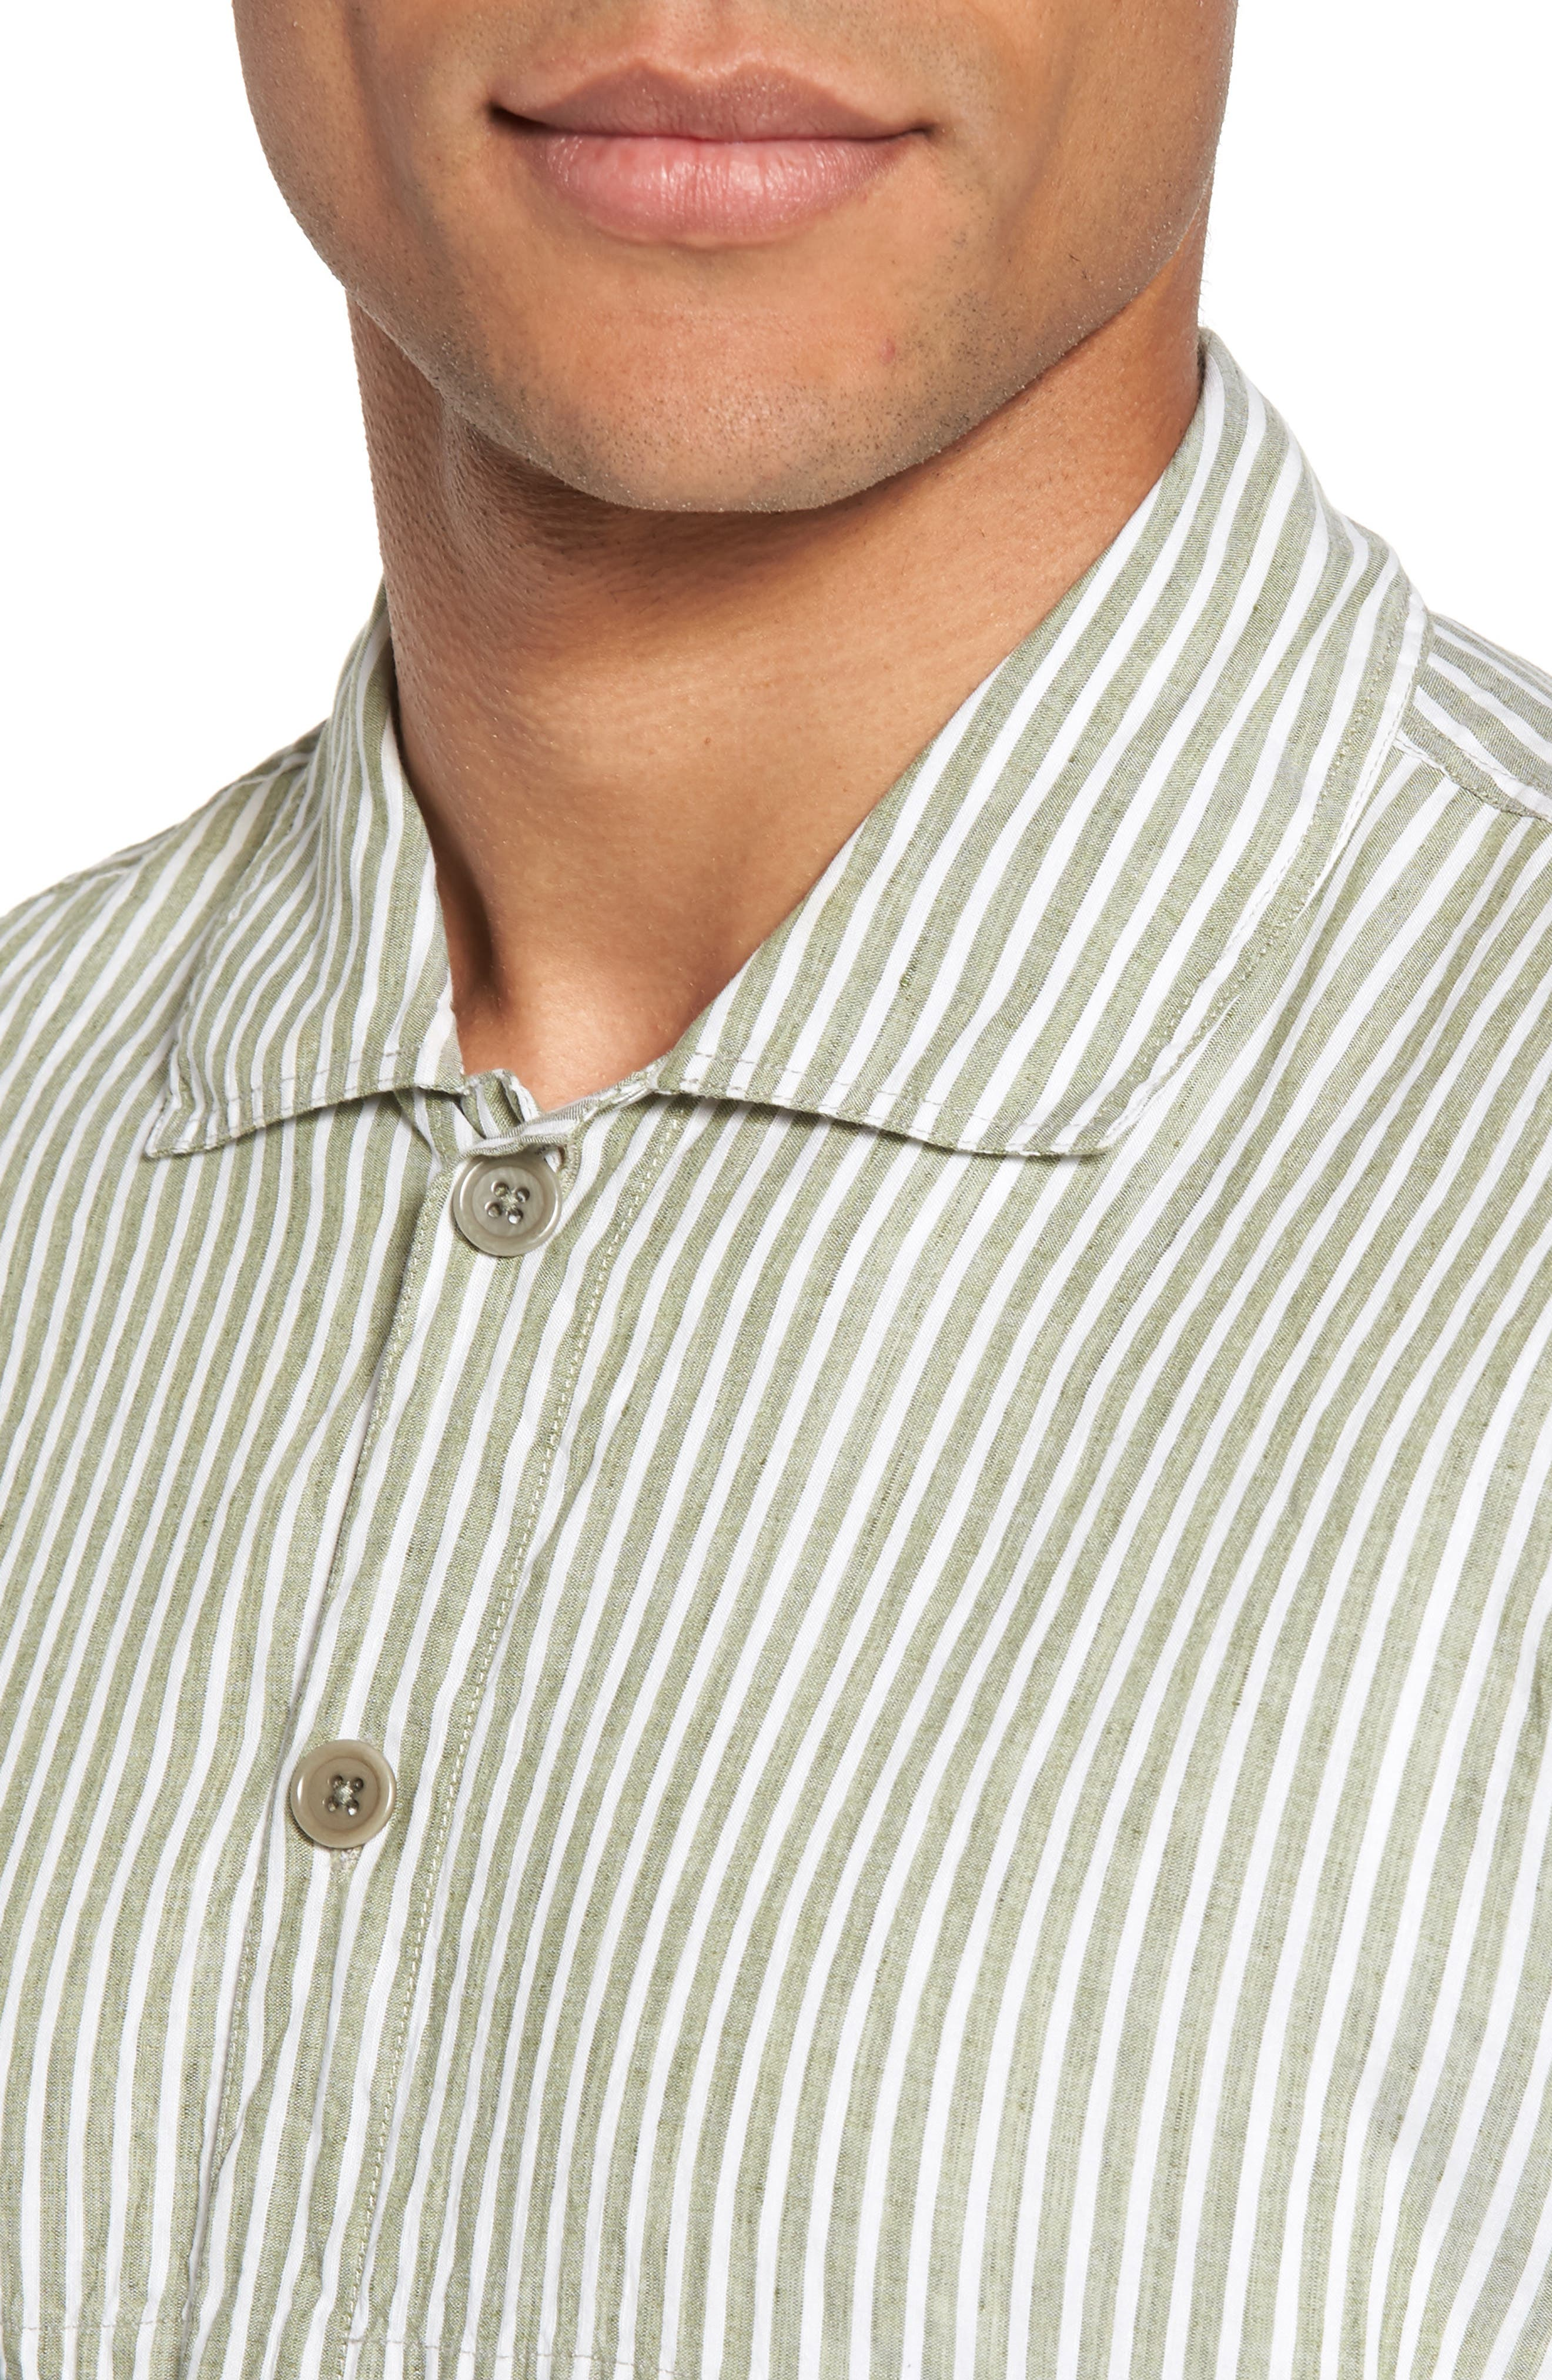 Doc Savage Regular Fit Sport Shirt,                             Alternate thumbnail 4, color,                             300